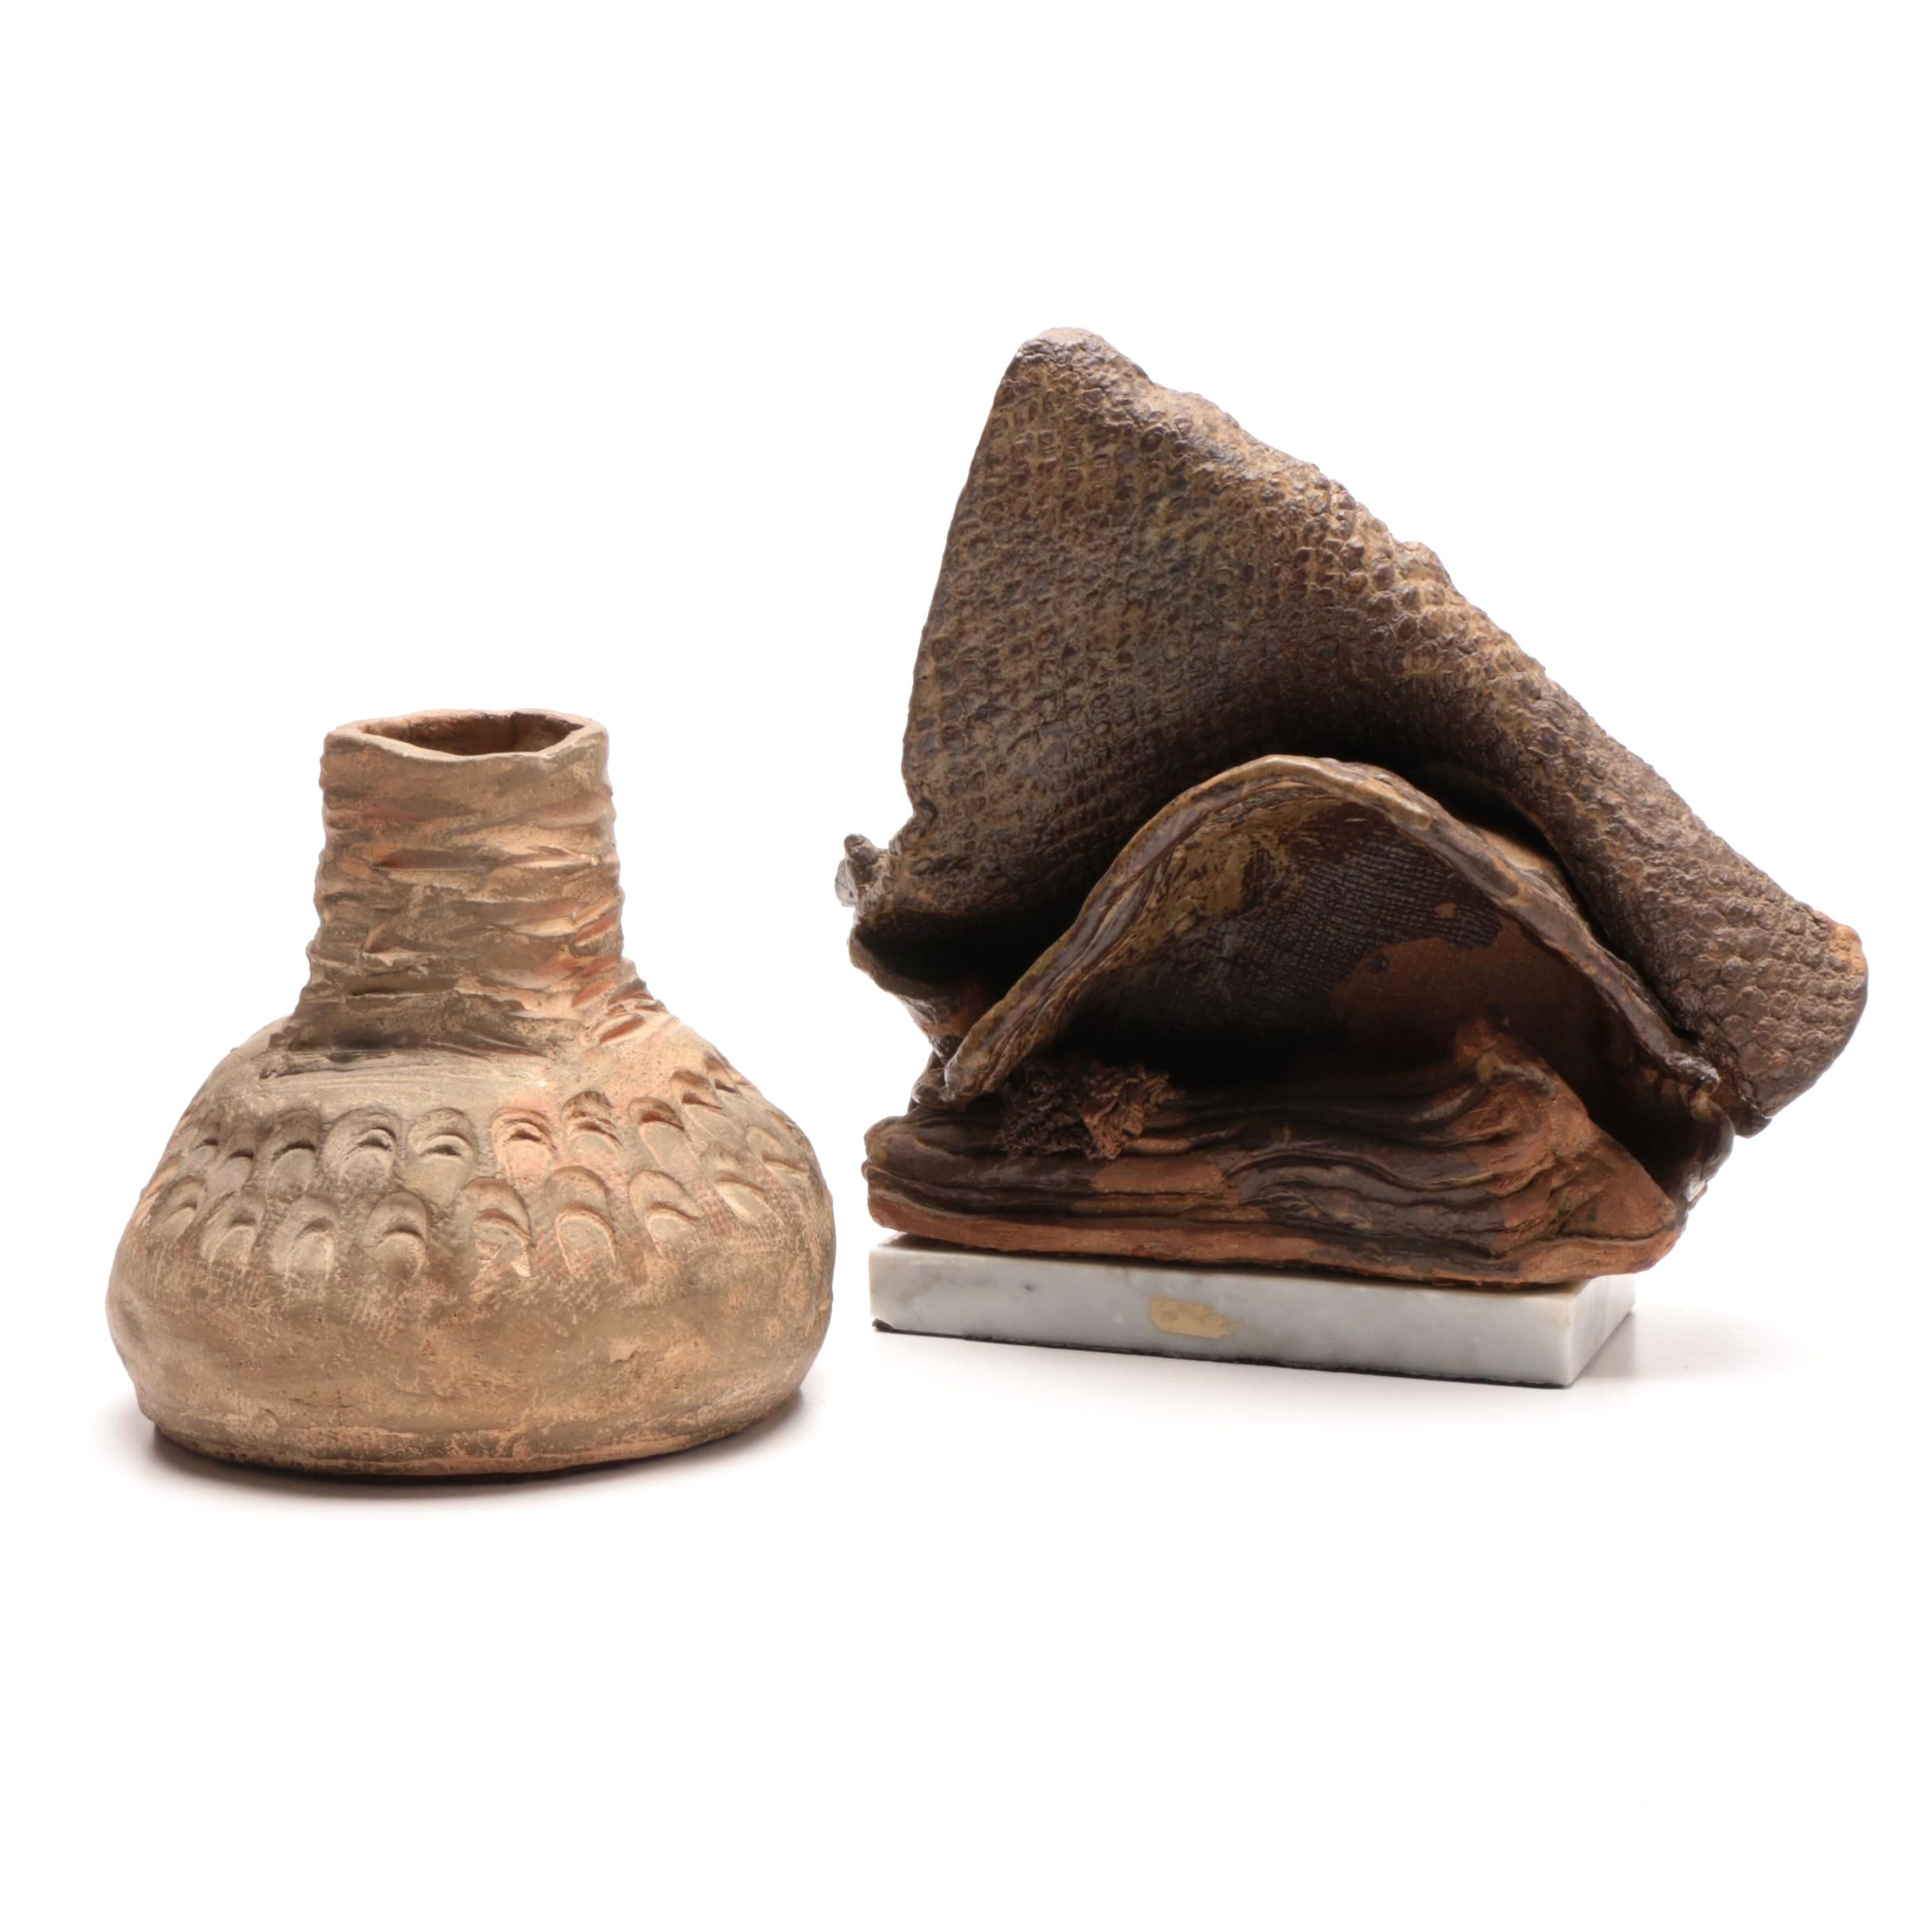 Two Art Pottery Pieces